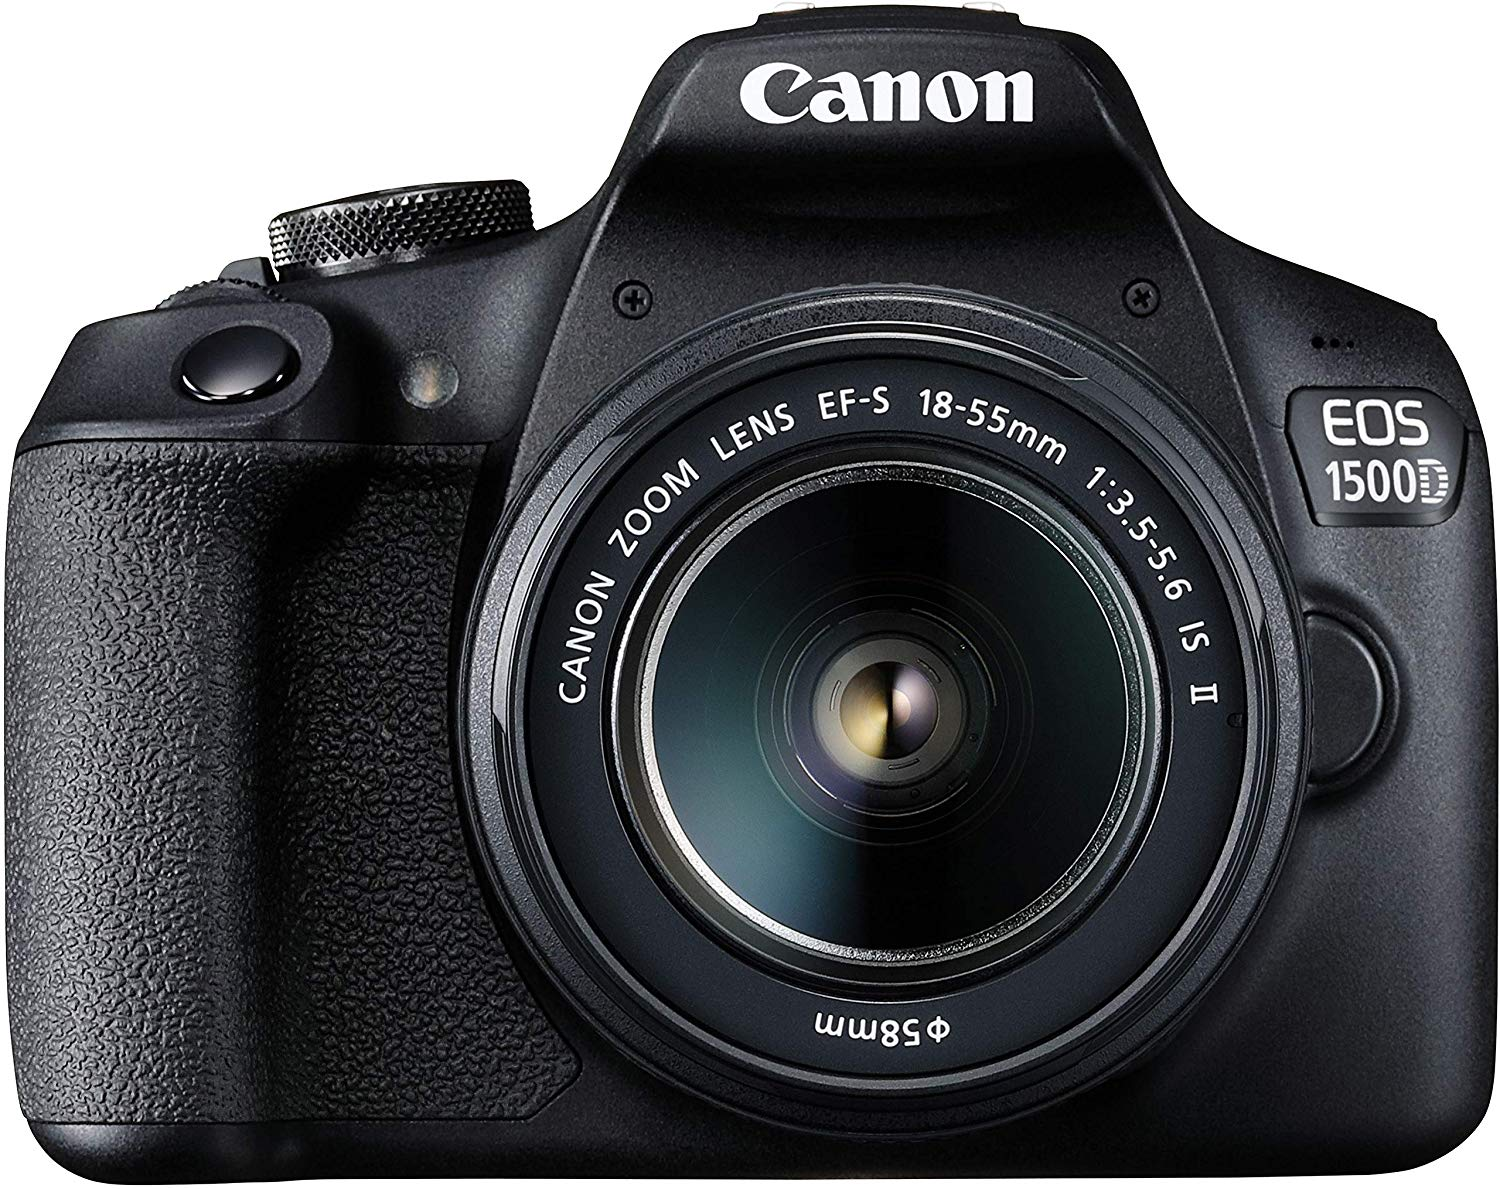 Amazon-Buy-Canon-EOS-1500D-Digital-SLR-Camera-at-Rs-19990